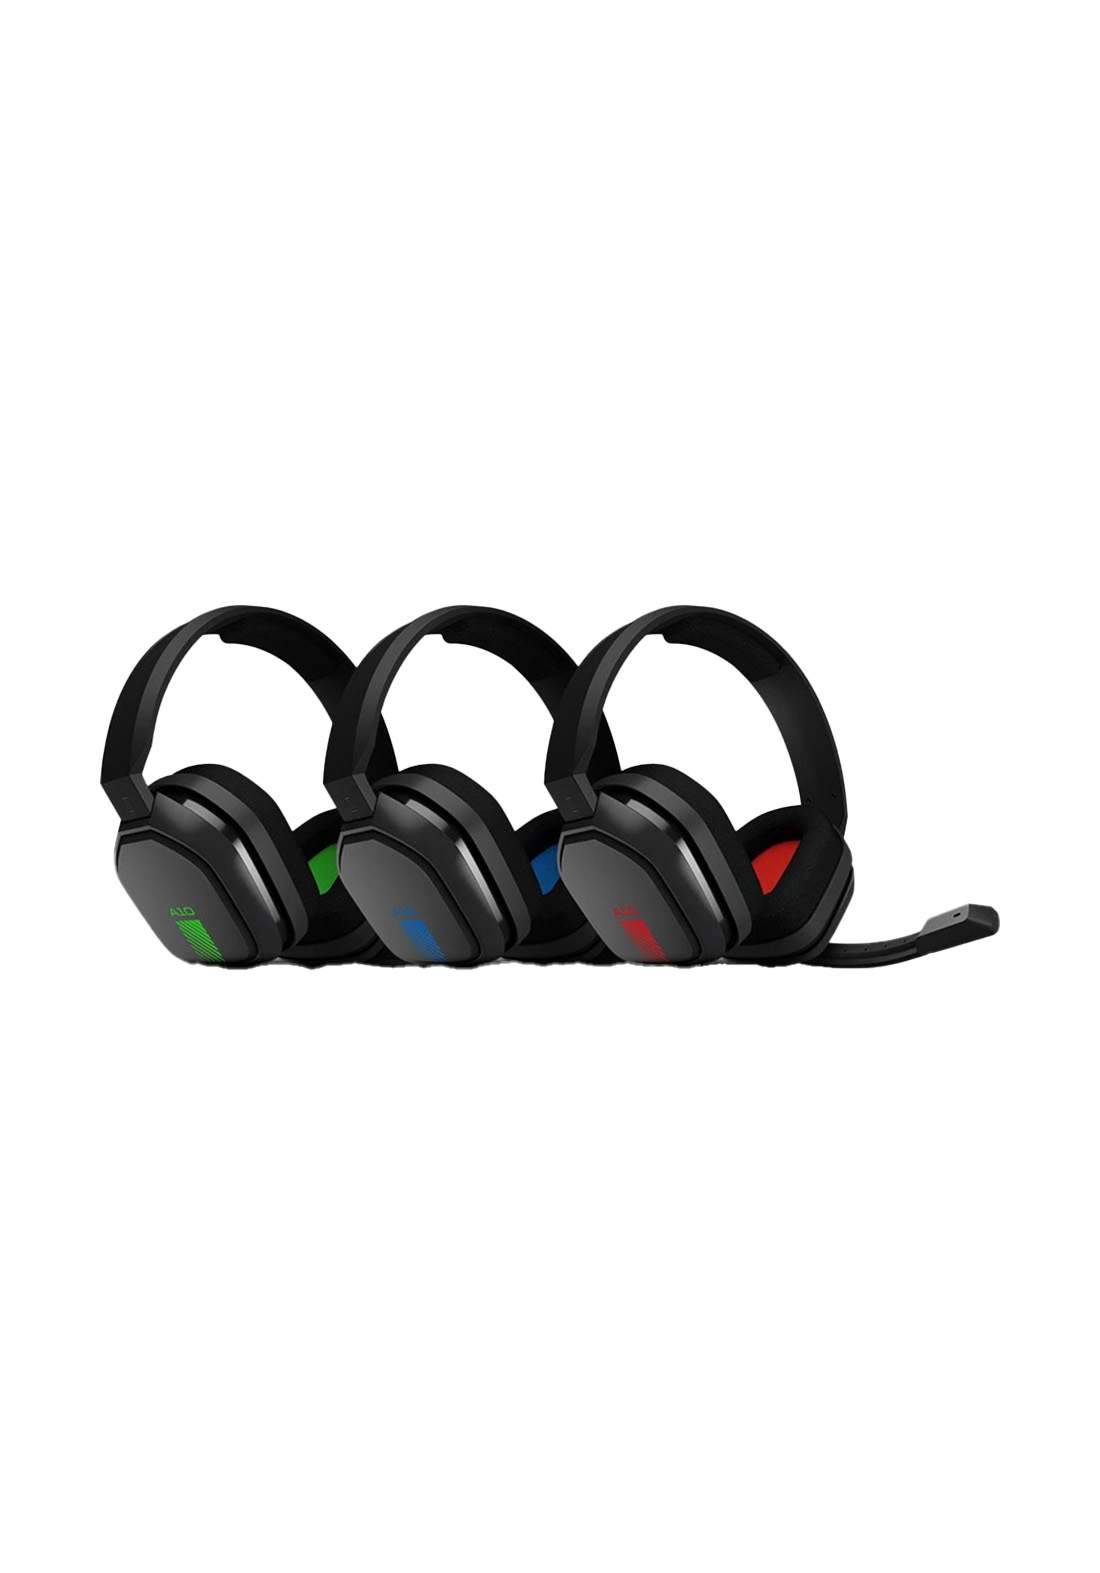 Logitech Astro A10 Wired Headset سماعة